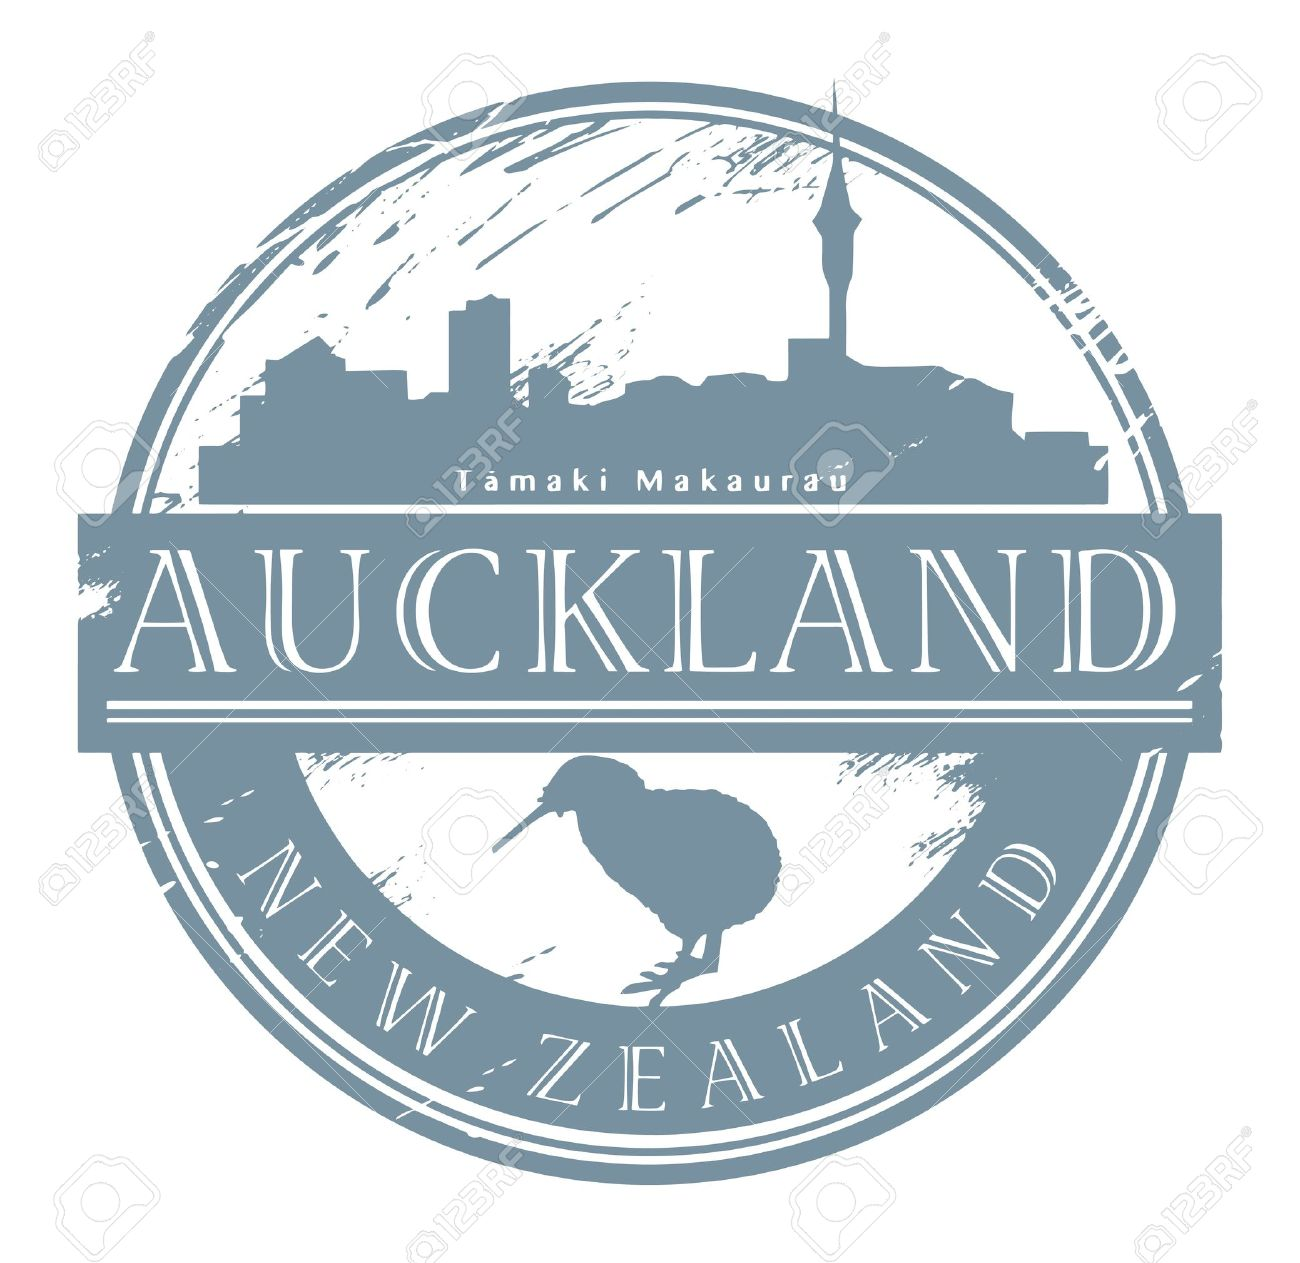 323 Auckland New Zealand Cliparts, Stock Vector And Royalty Free.